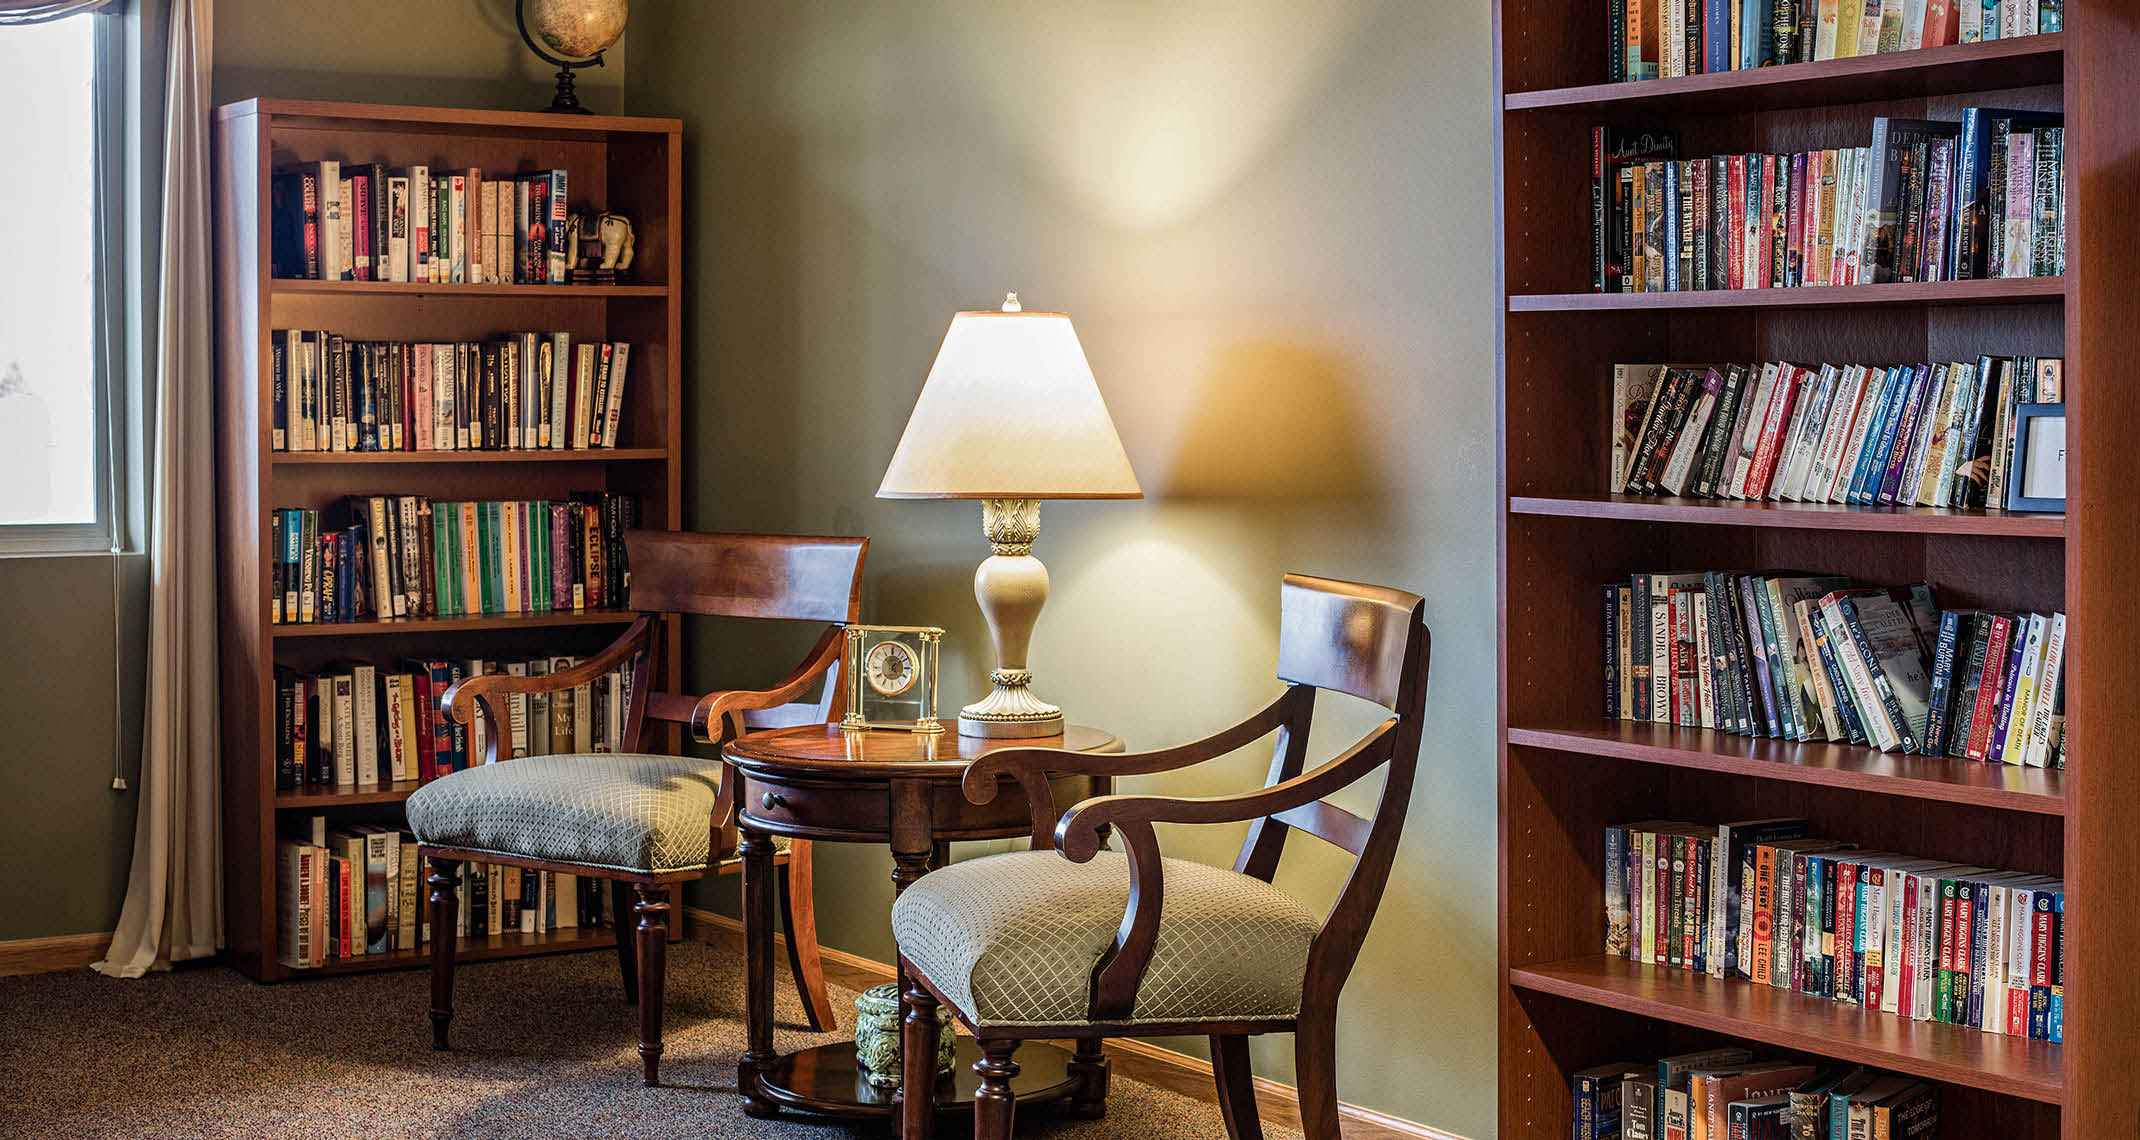 Study in assisted living center near Des Moines